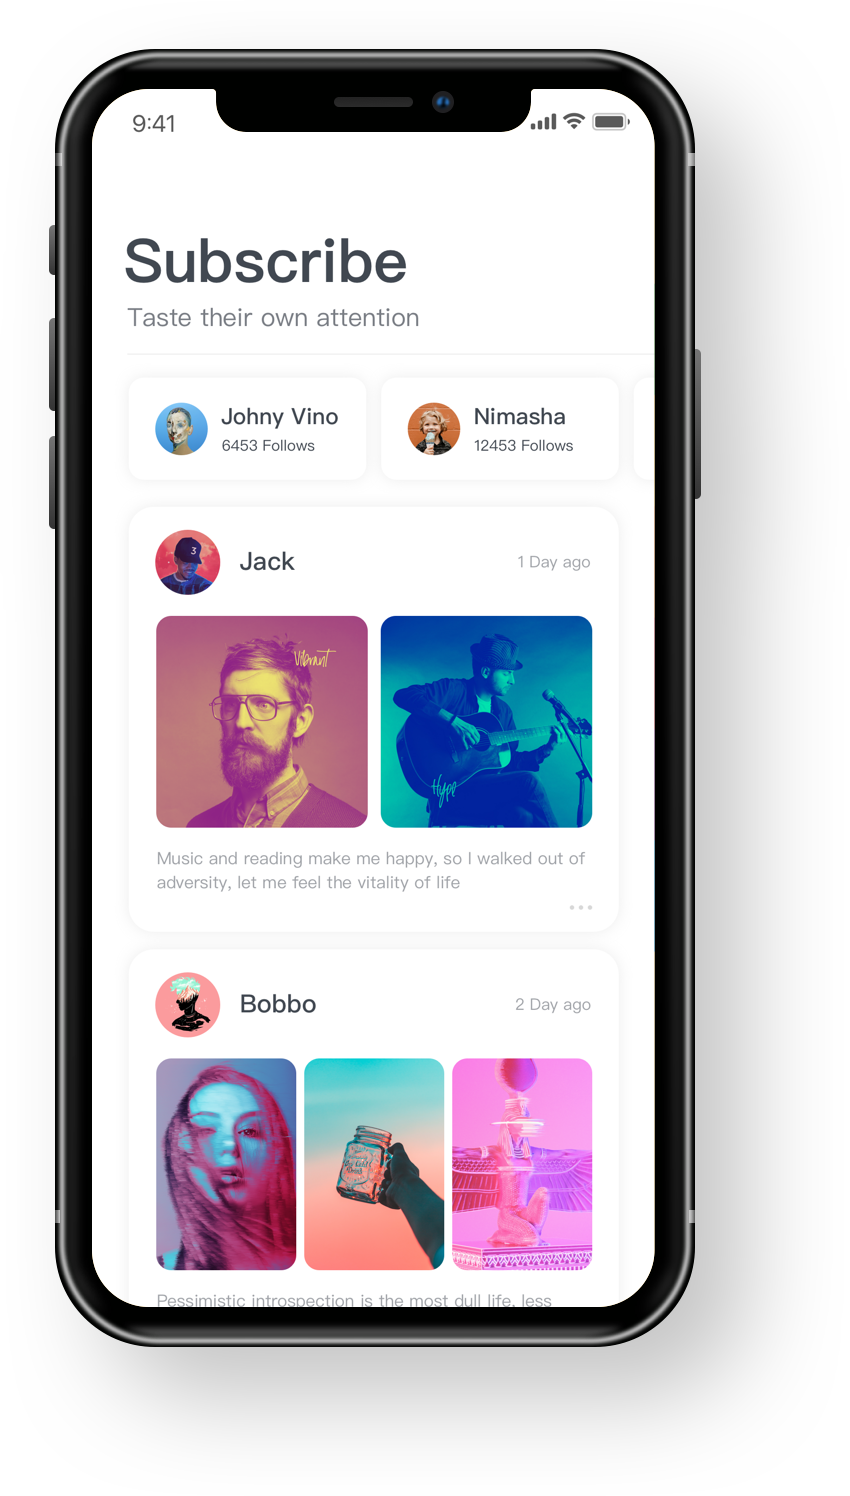 Iphone x dark copy 6 Ios app design, App design